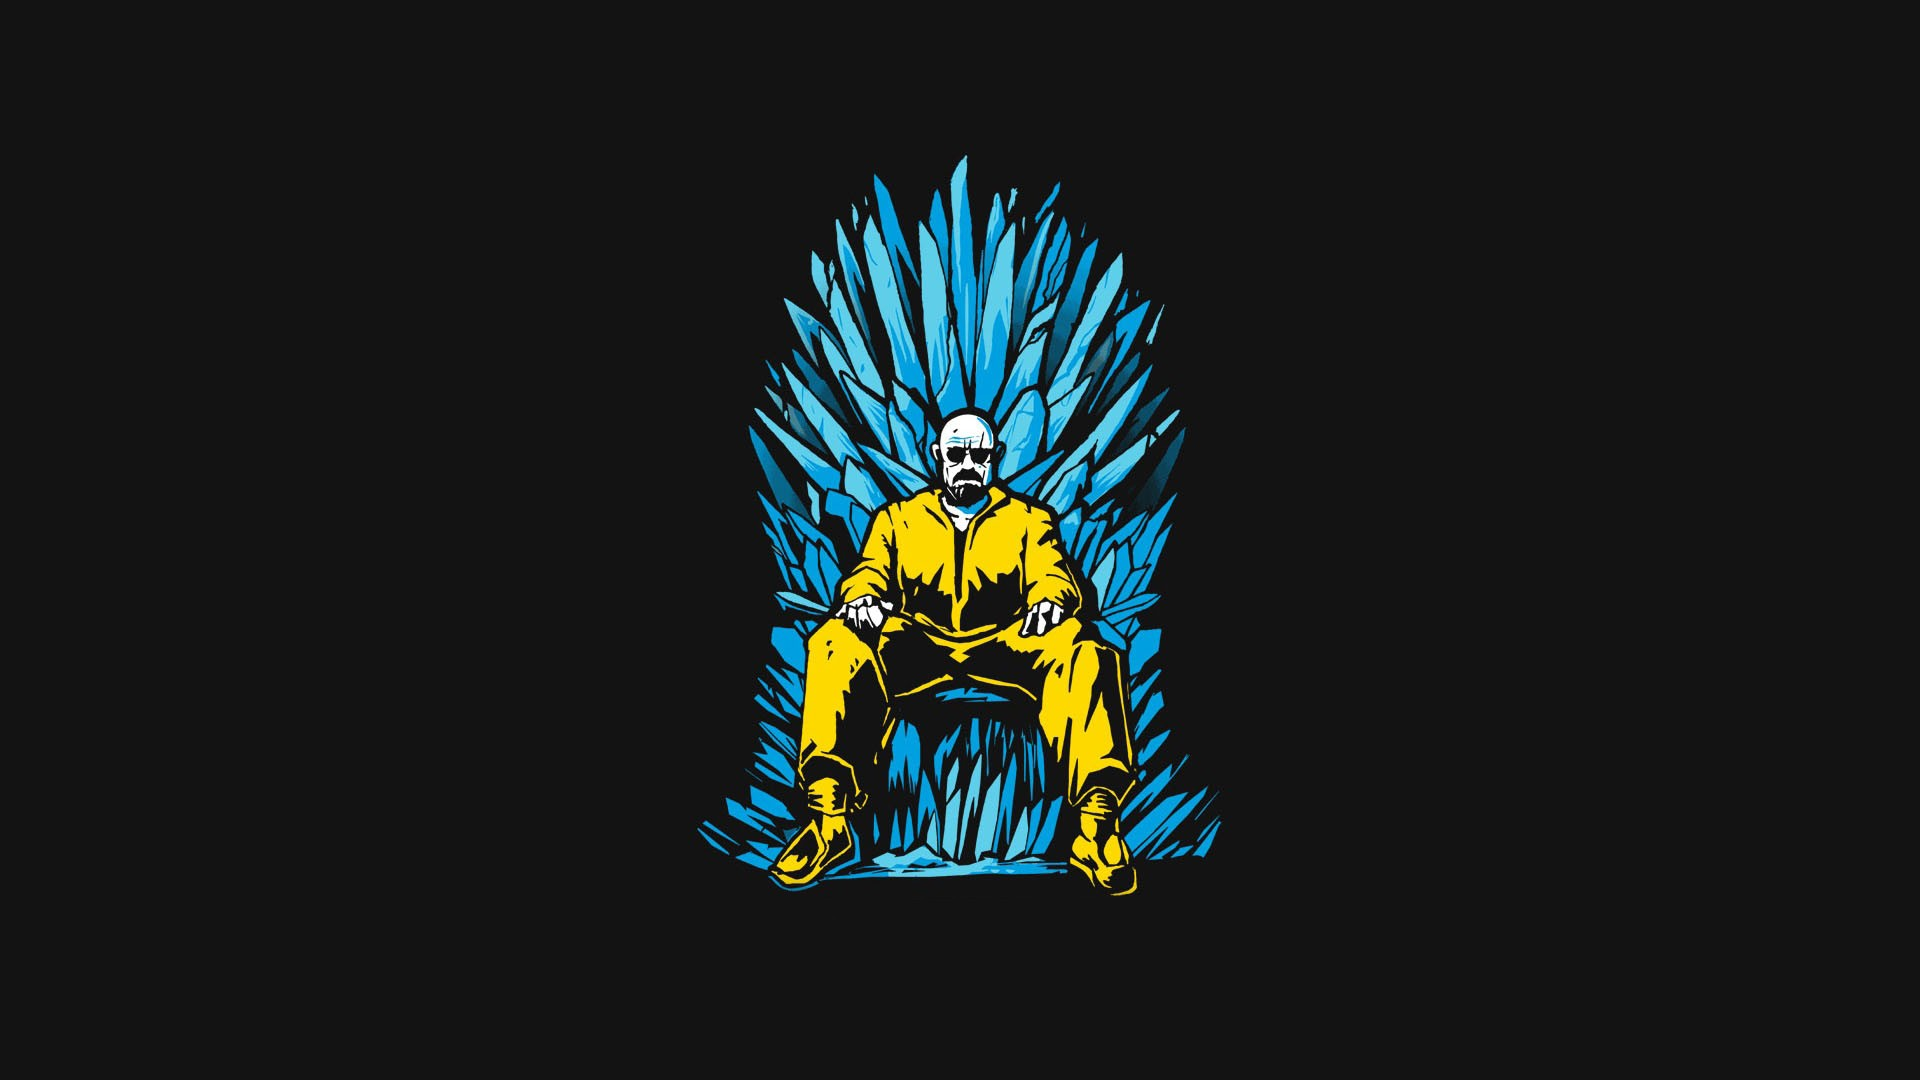 Walter White Game Of Thrones Minimalism, HD Tv Shows, 4k